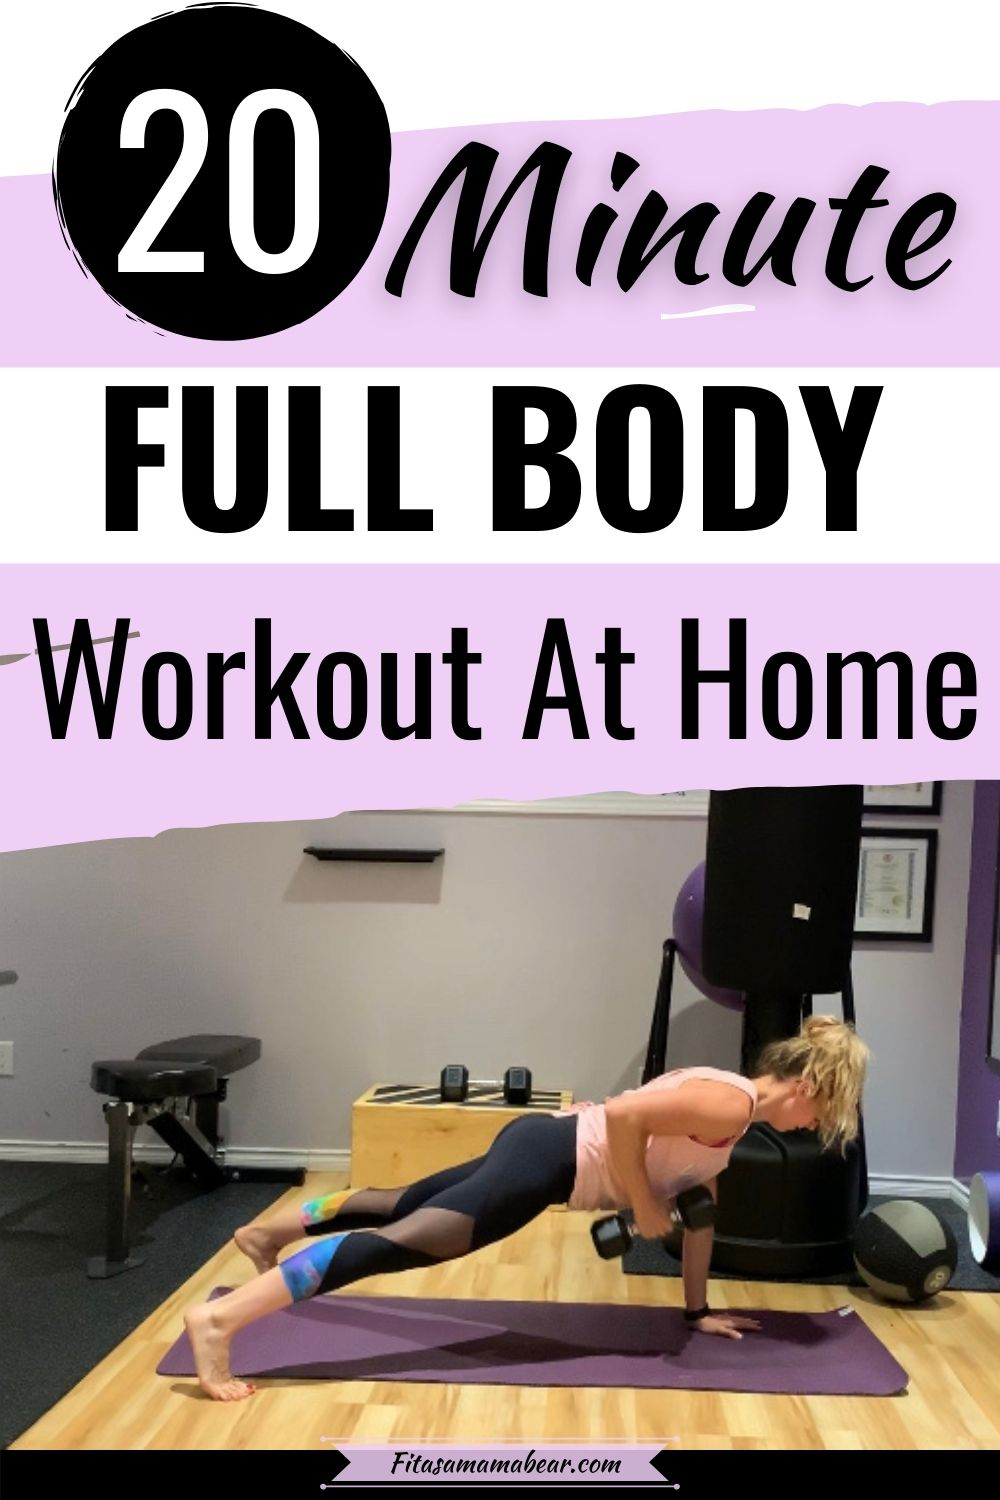 Pinterest image with text: woman in black pants and a peach shirt performing a dumbbell exercise with text about a home workout